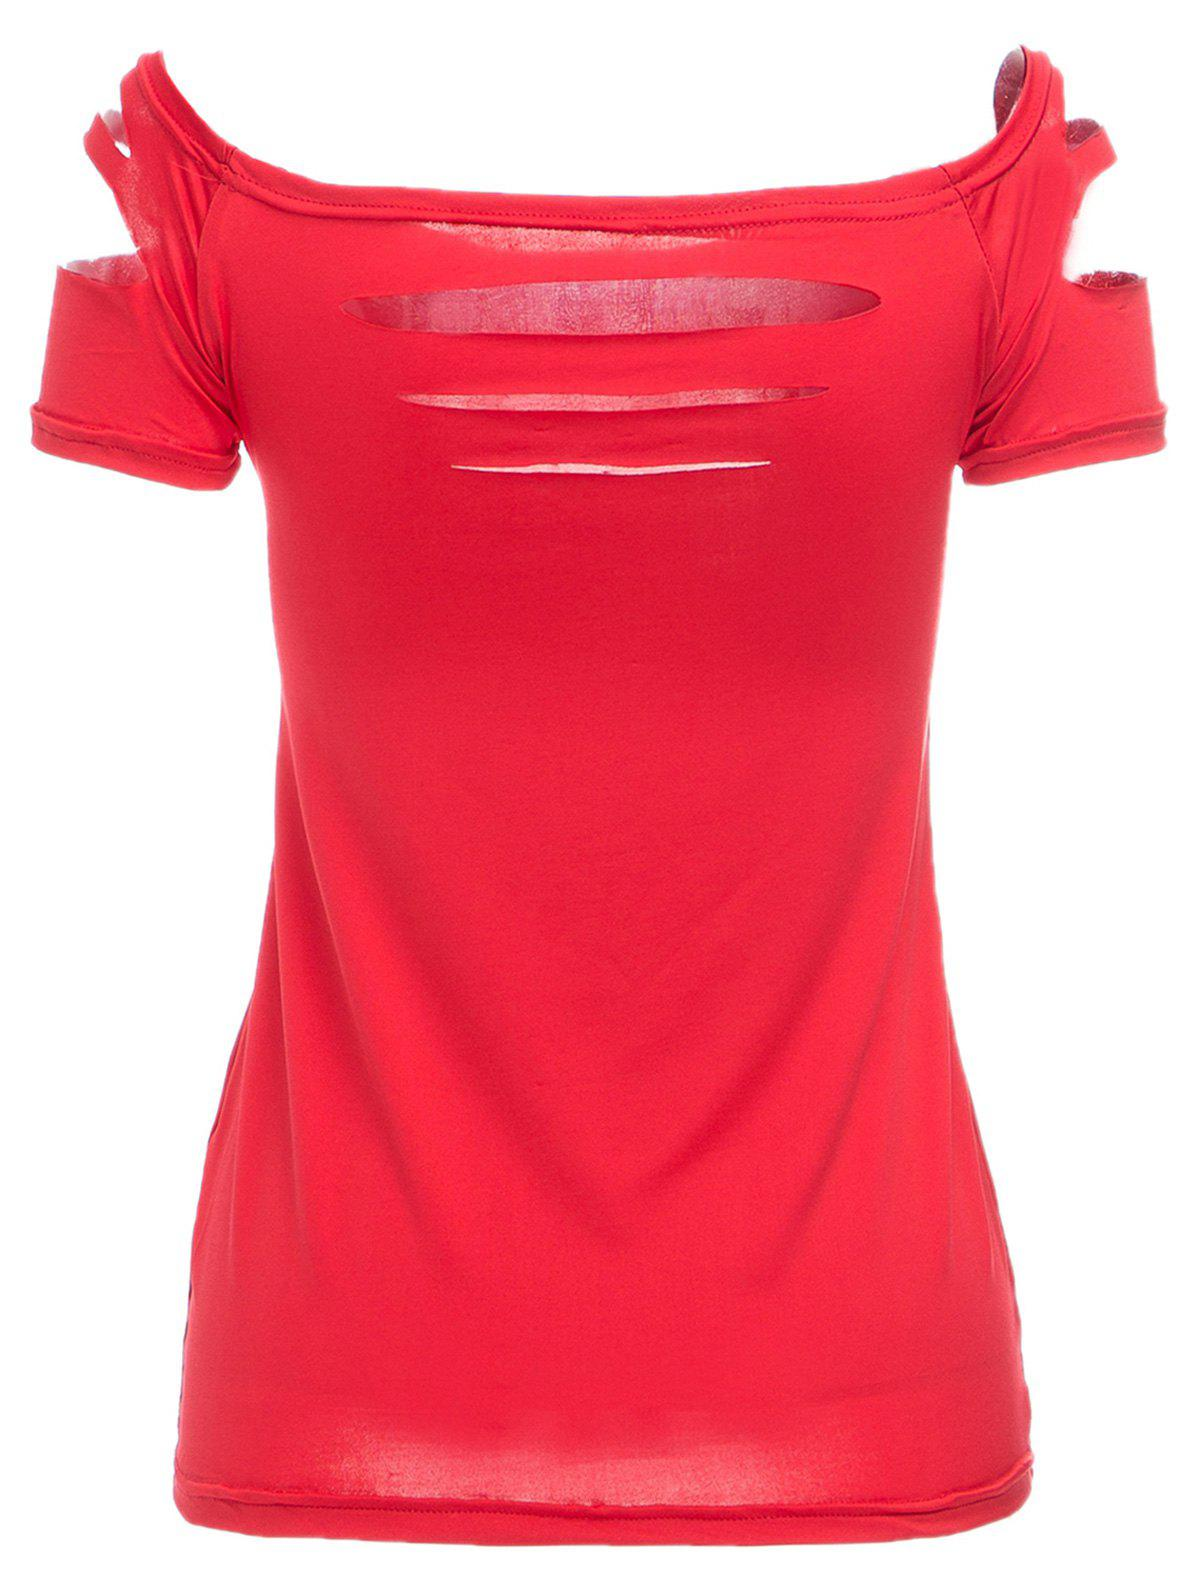 Elegant Scoop Neck Short Sleeve Hollow Out T-Shirt For Women - RED L